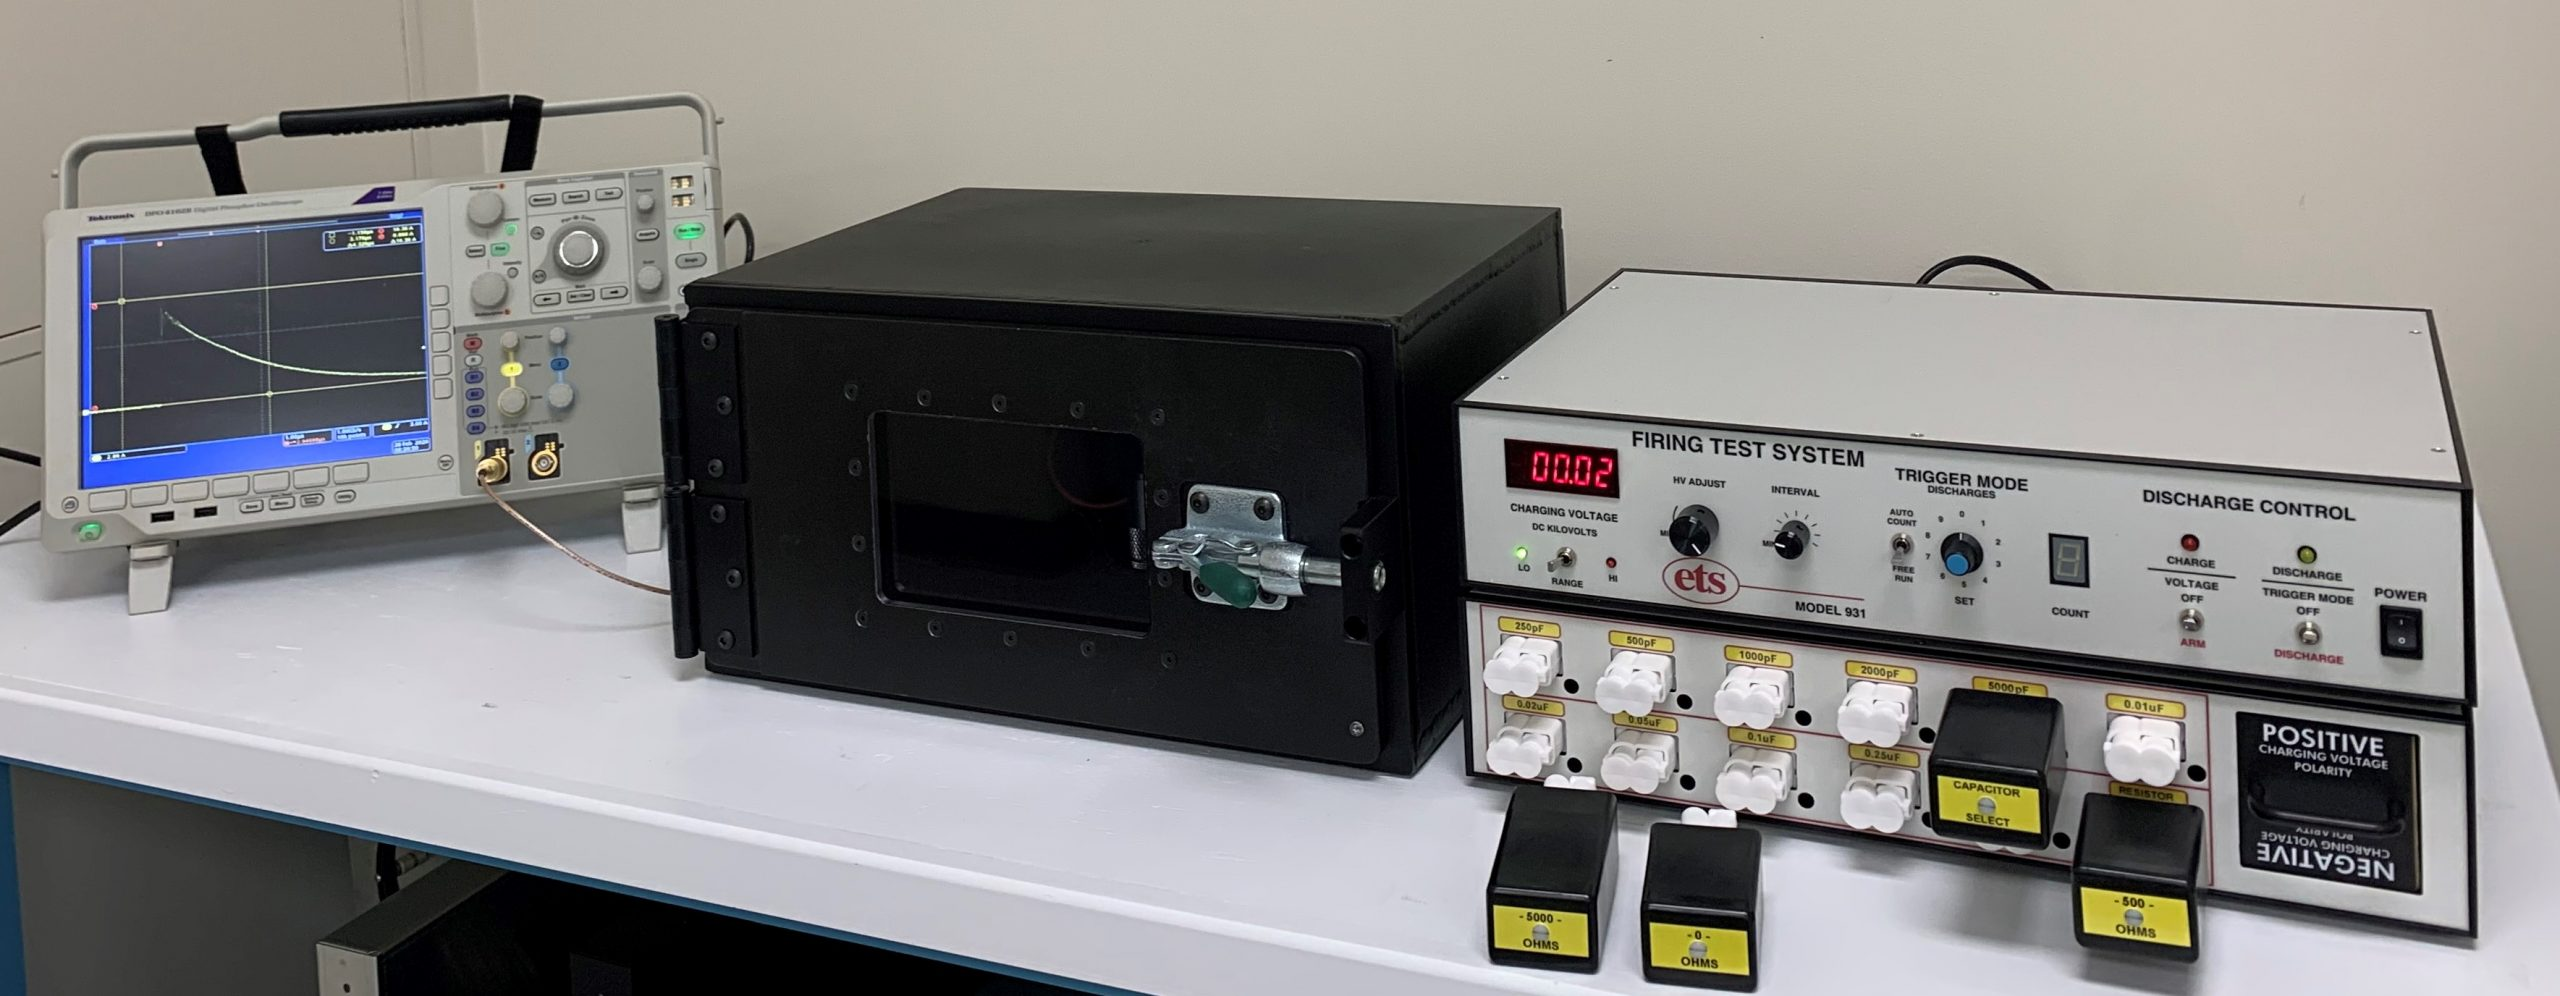 Model 931 – Electrostatic Discharge Firing Test System